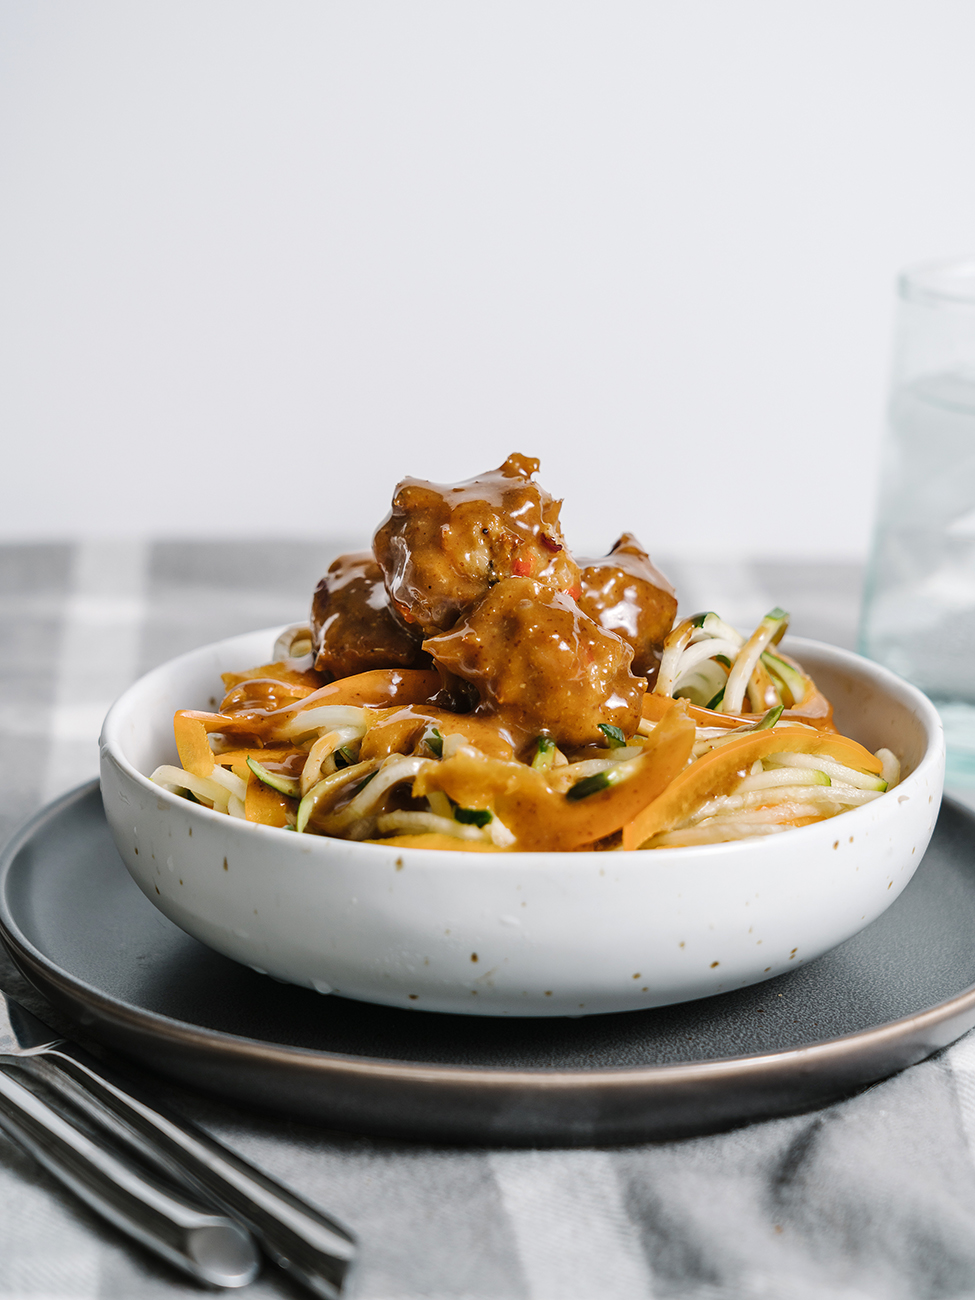 Chicken Teriyaki Meatballs served on top of noodles